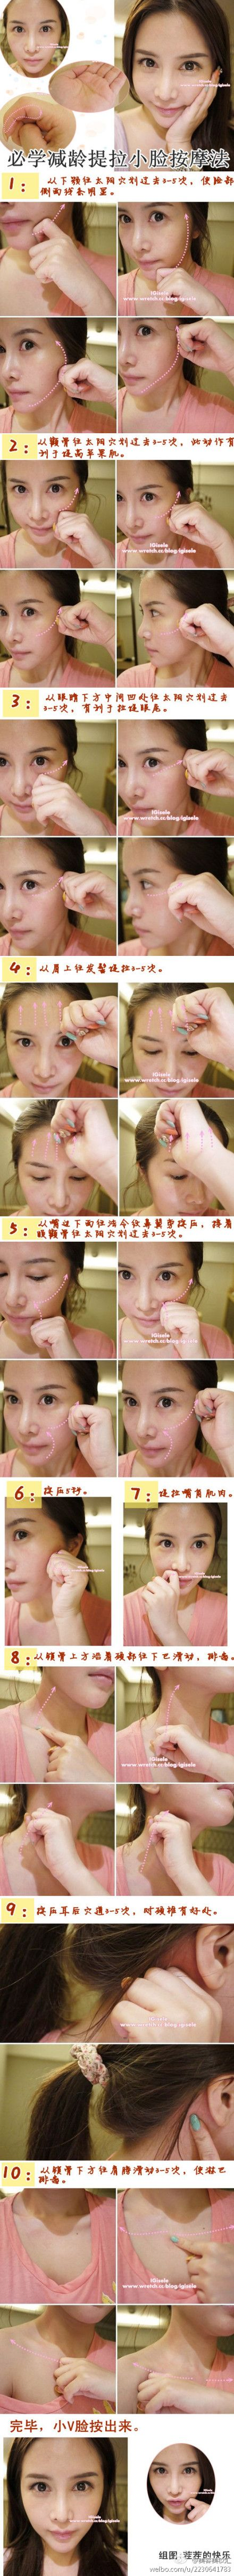 Girls will learn by age pulling a face massage ~ ~ you hesitate, quickly moving hands ~ http://anti-aging-secrets.us